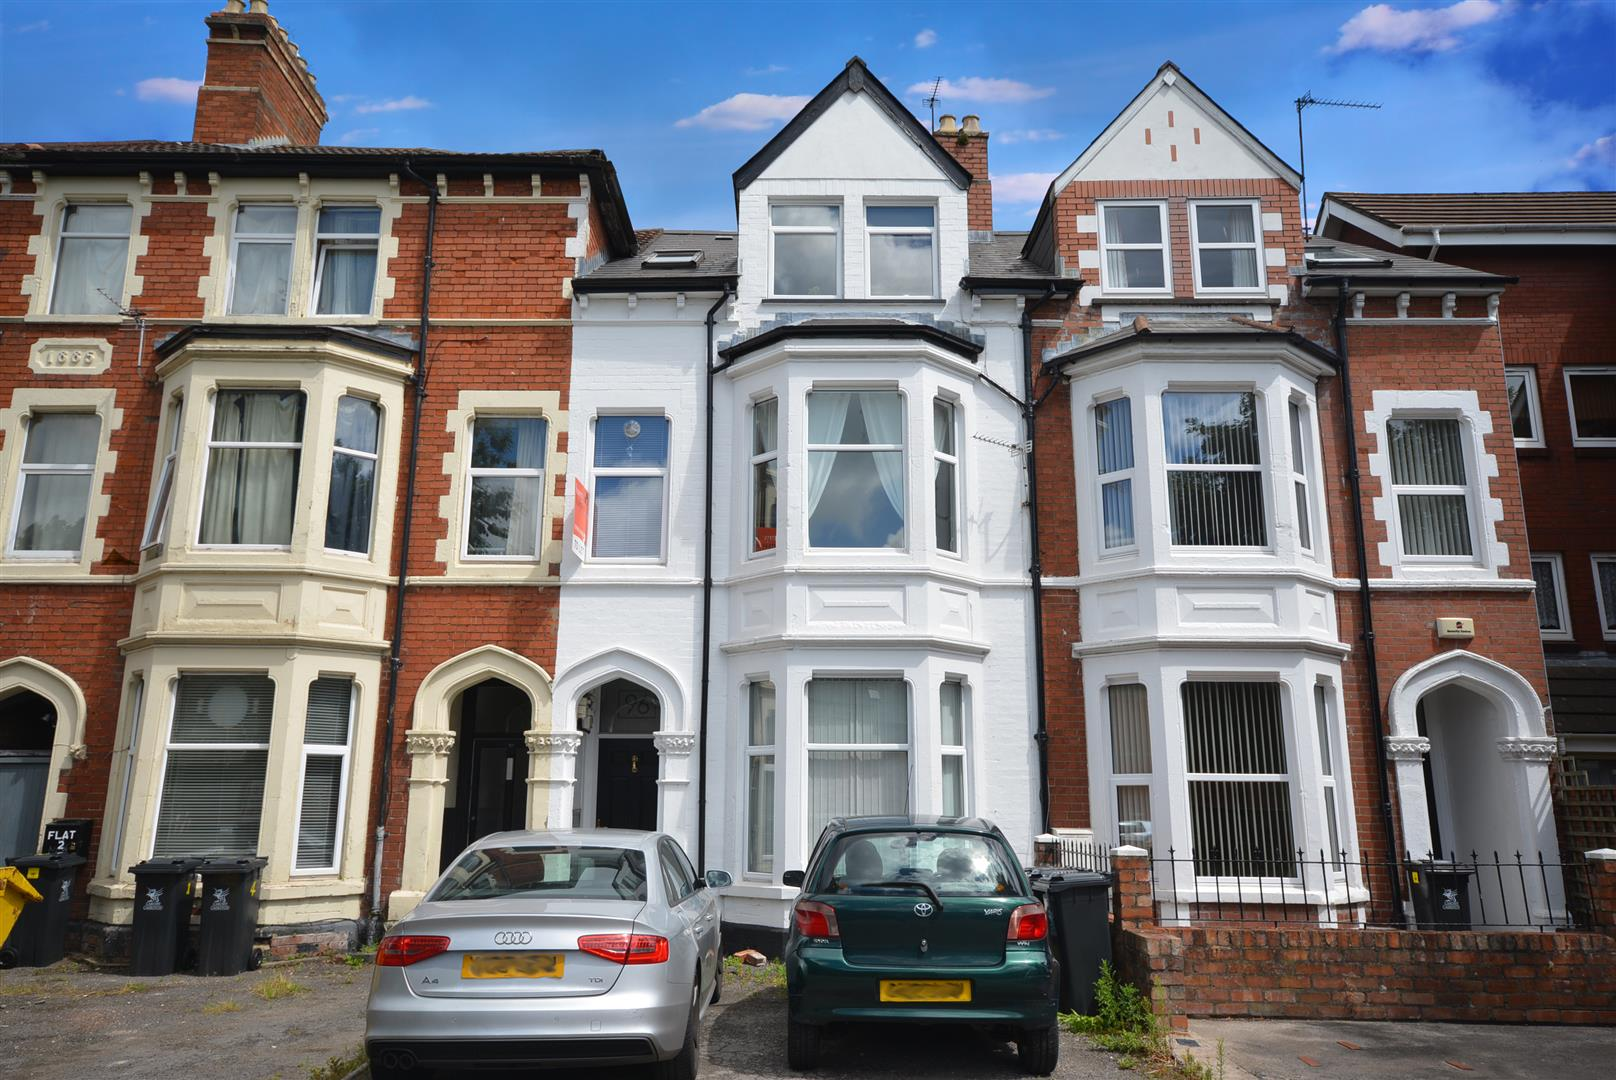 2 bed apartment to rent in Llandaff Road, Cardiff, CF11